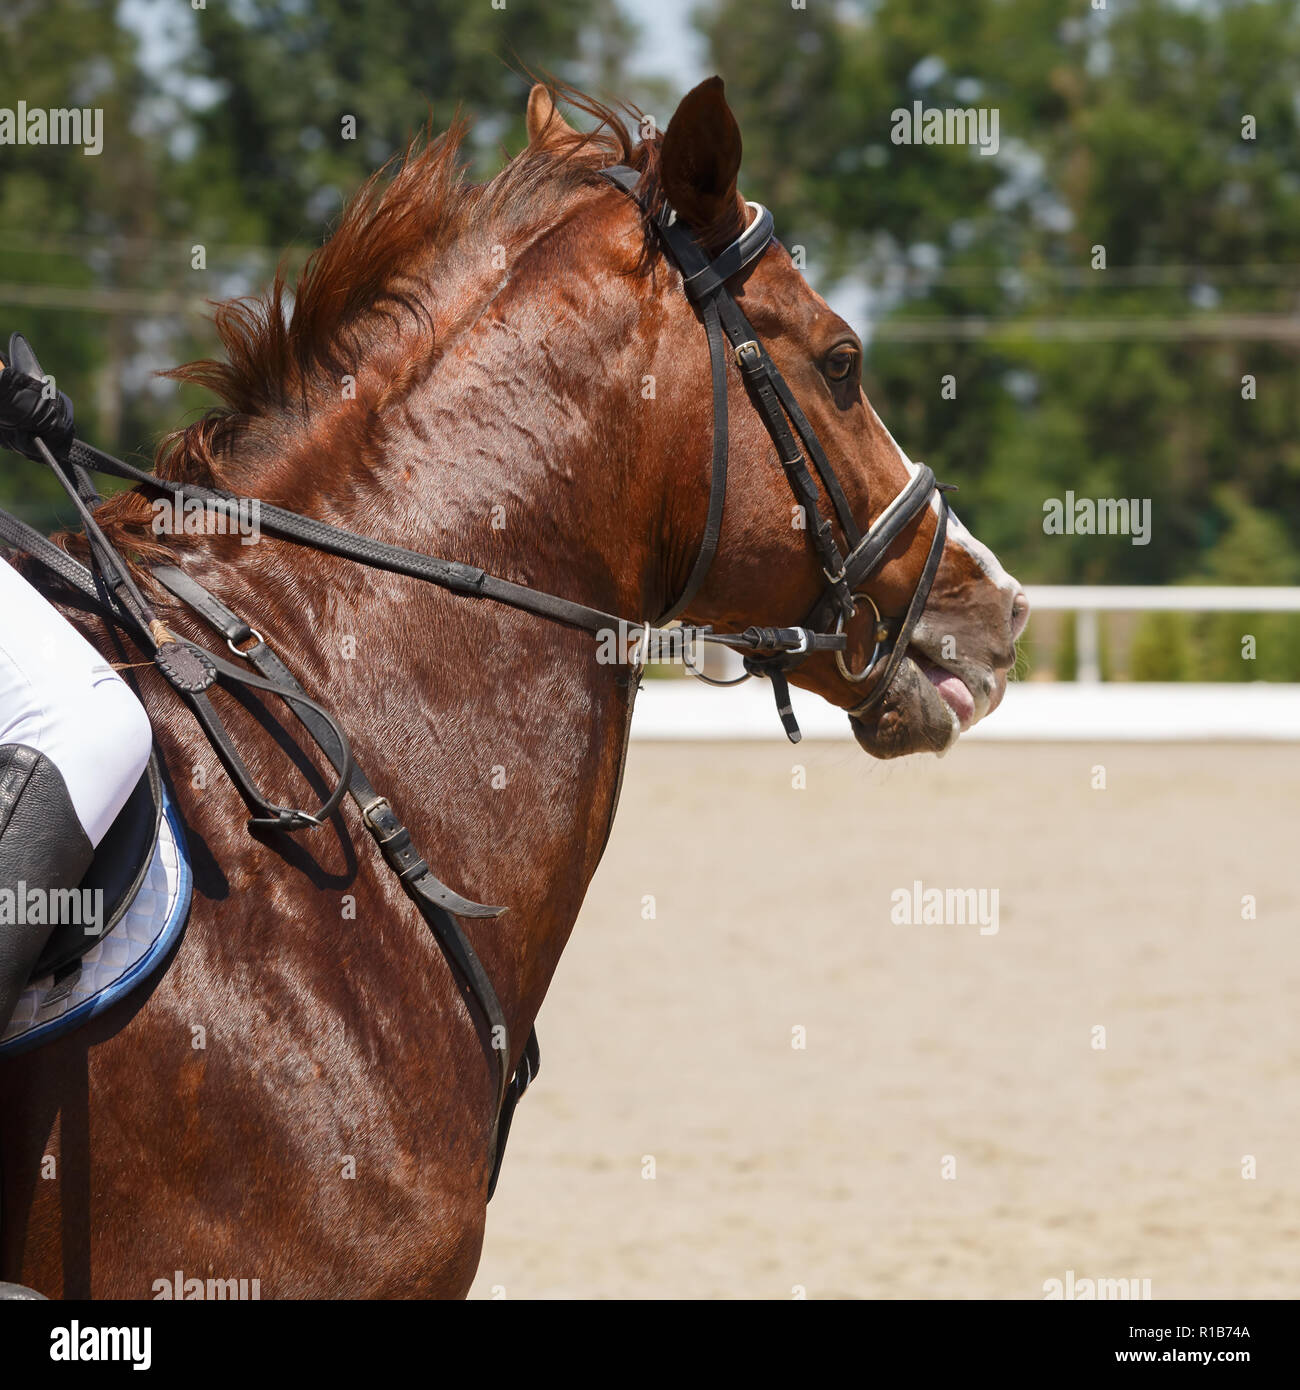 Head of galloping the sorrel horse close-up - Stock Image